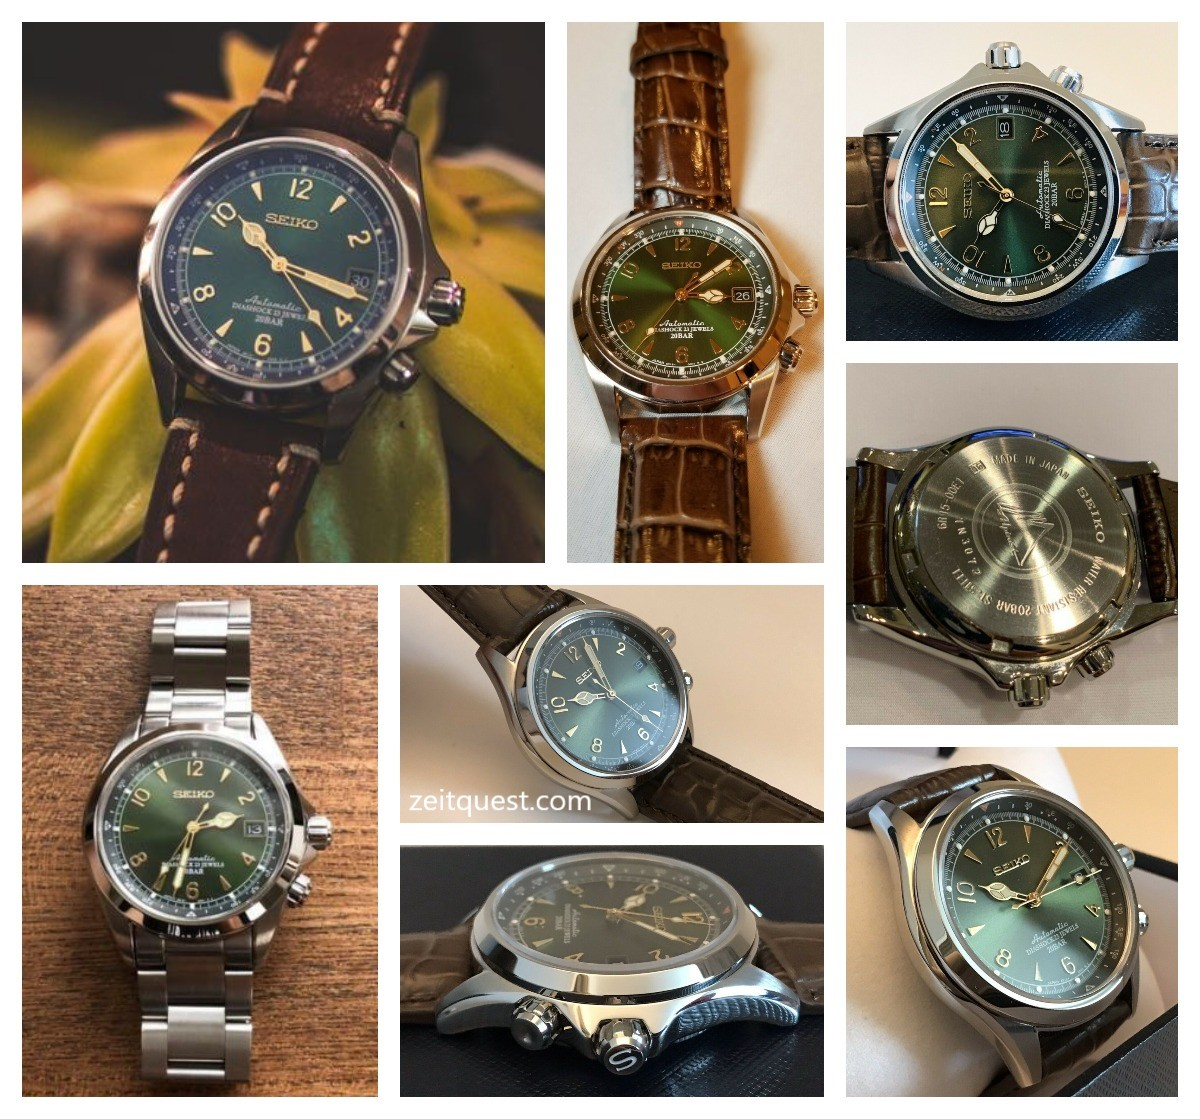 The Seiko SARB017, and its beautiful green dial, on different straps/bracelet. eBay listings.